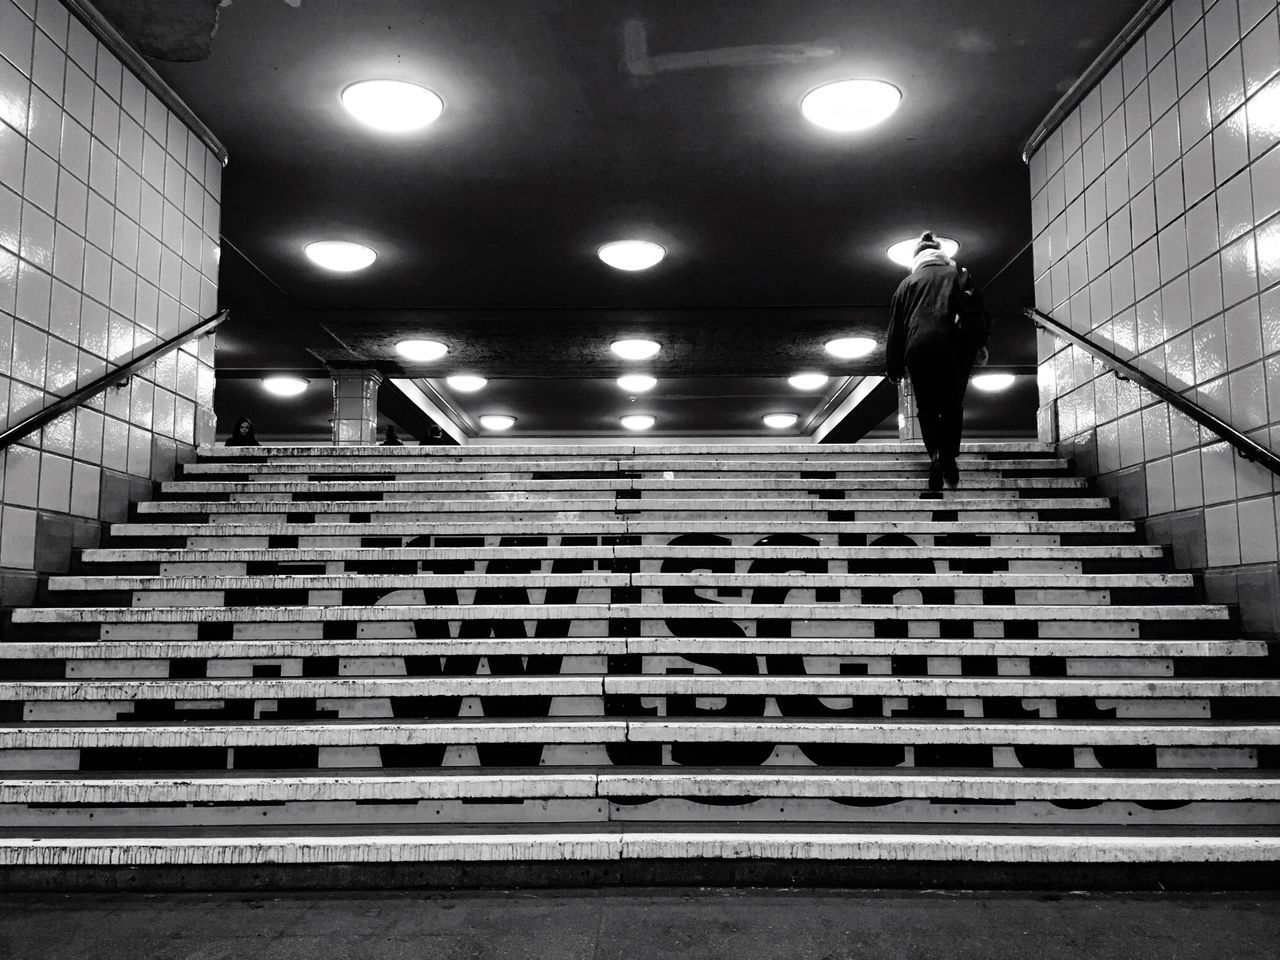 Hermannplatz Metro Station Ubahn Berlin Ubahn Neukölln Berlin Stairs Metro B&w Berlin Lovers Urbanphotography Berlincity Be Berlin Capture Berlin Blackandwhite Real People One Person Night City